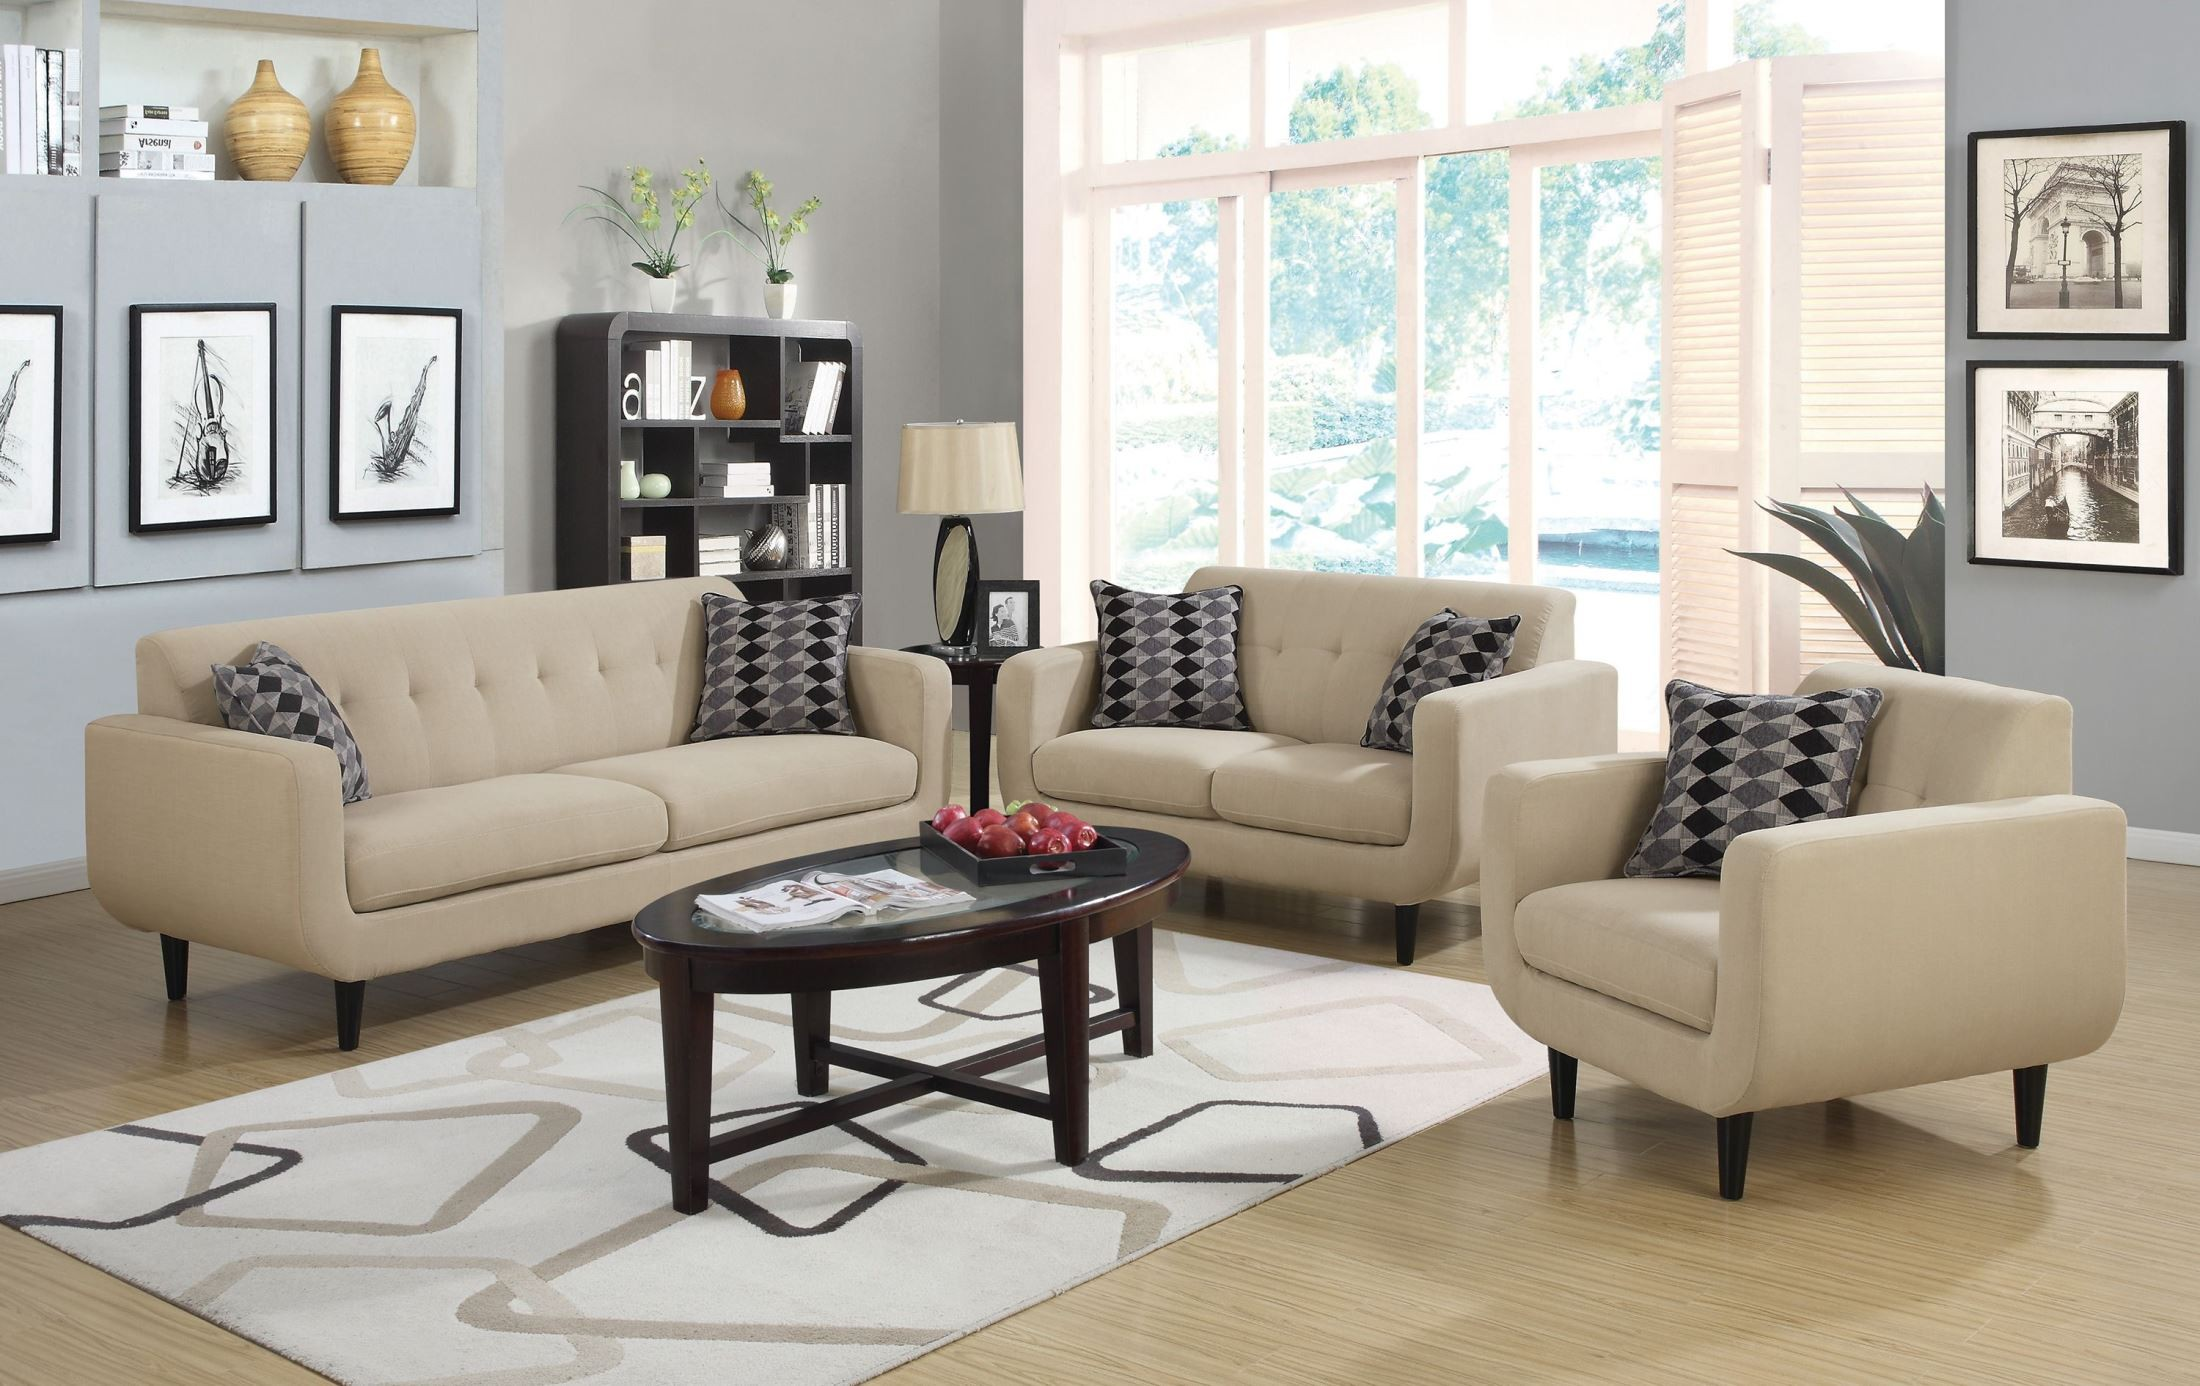 stansall ivory living room set from coaster 505204 coleman furniture. Black Bedroom Furniture Sets. Home Design Ideas